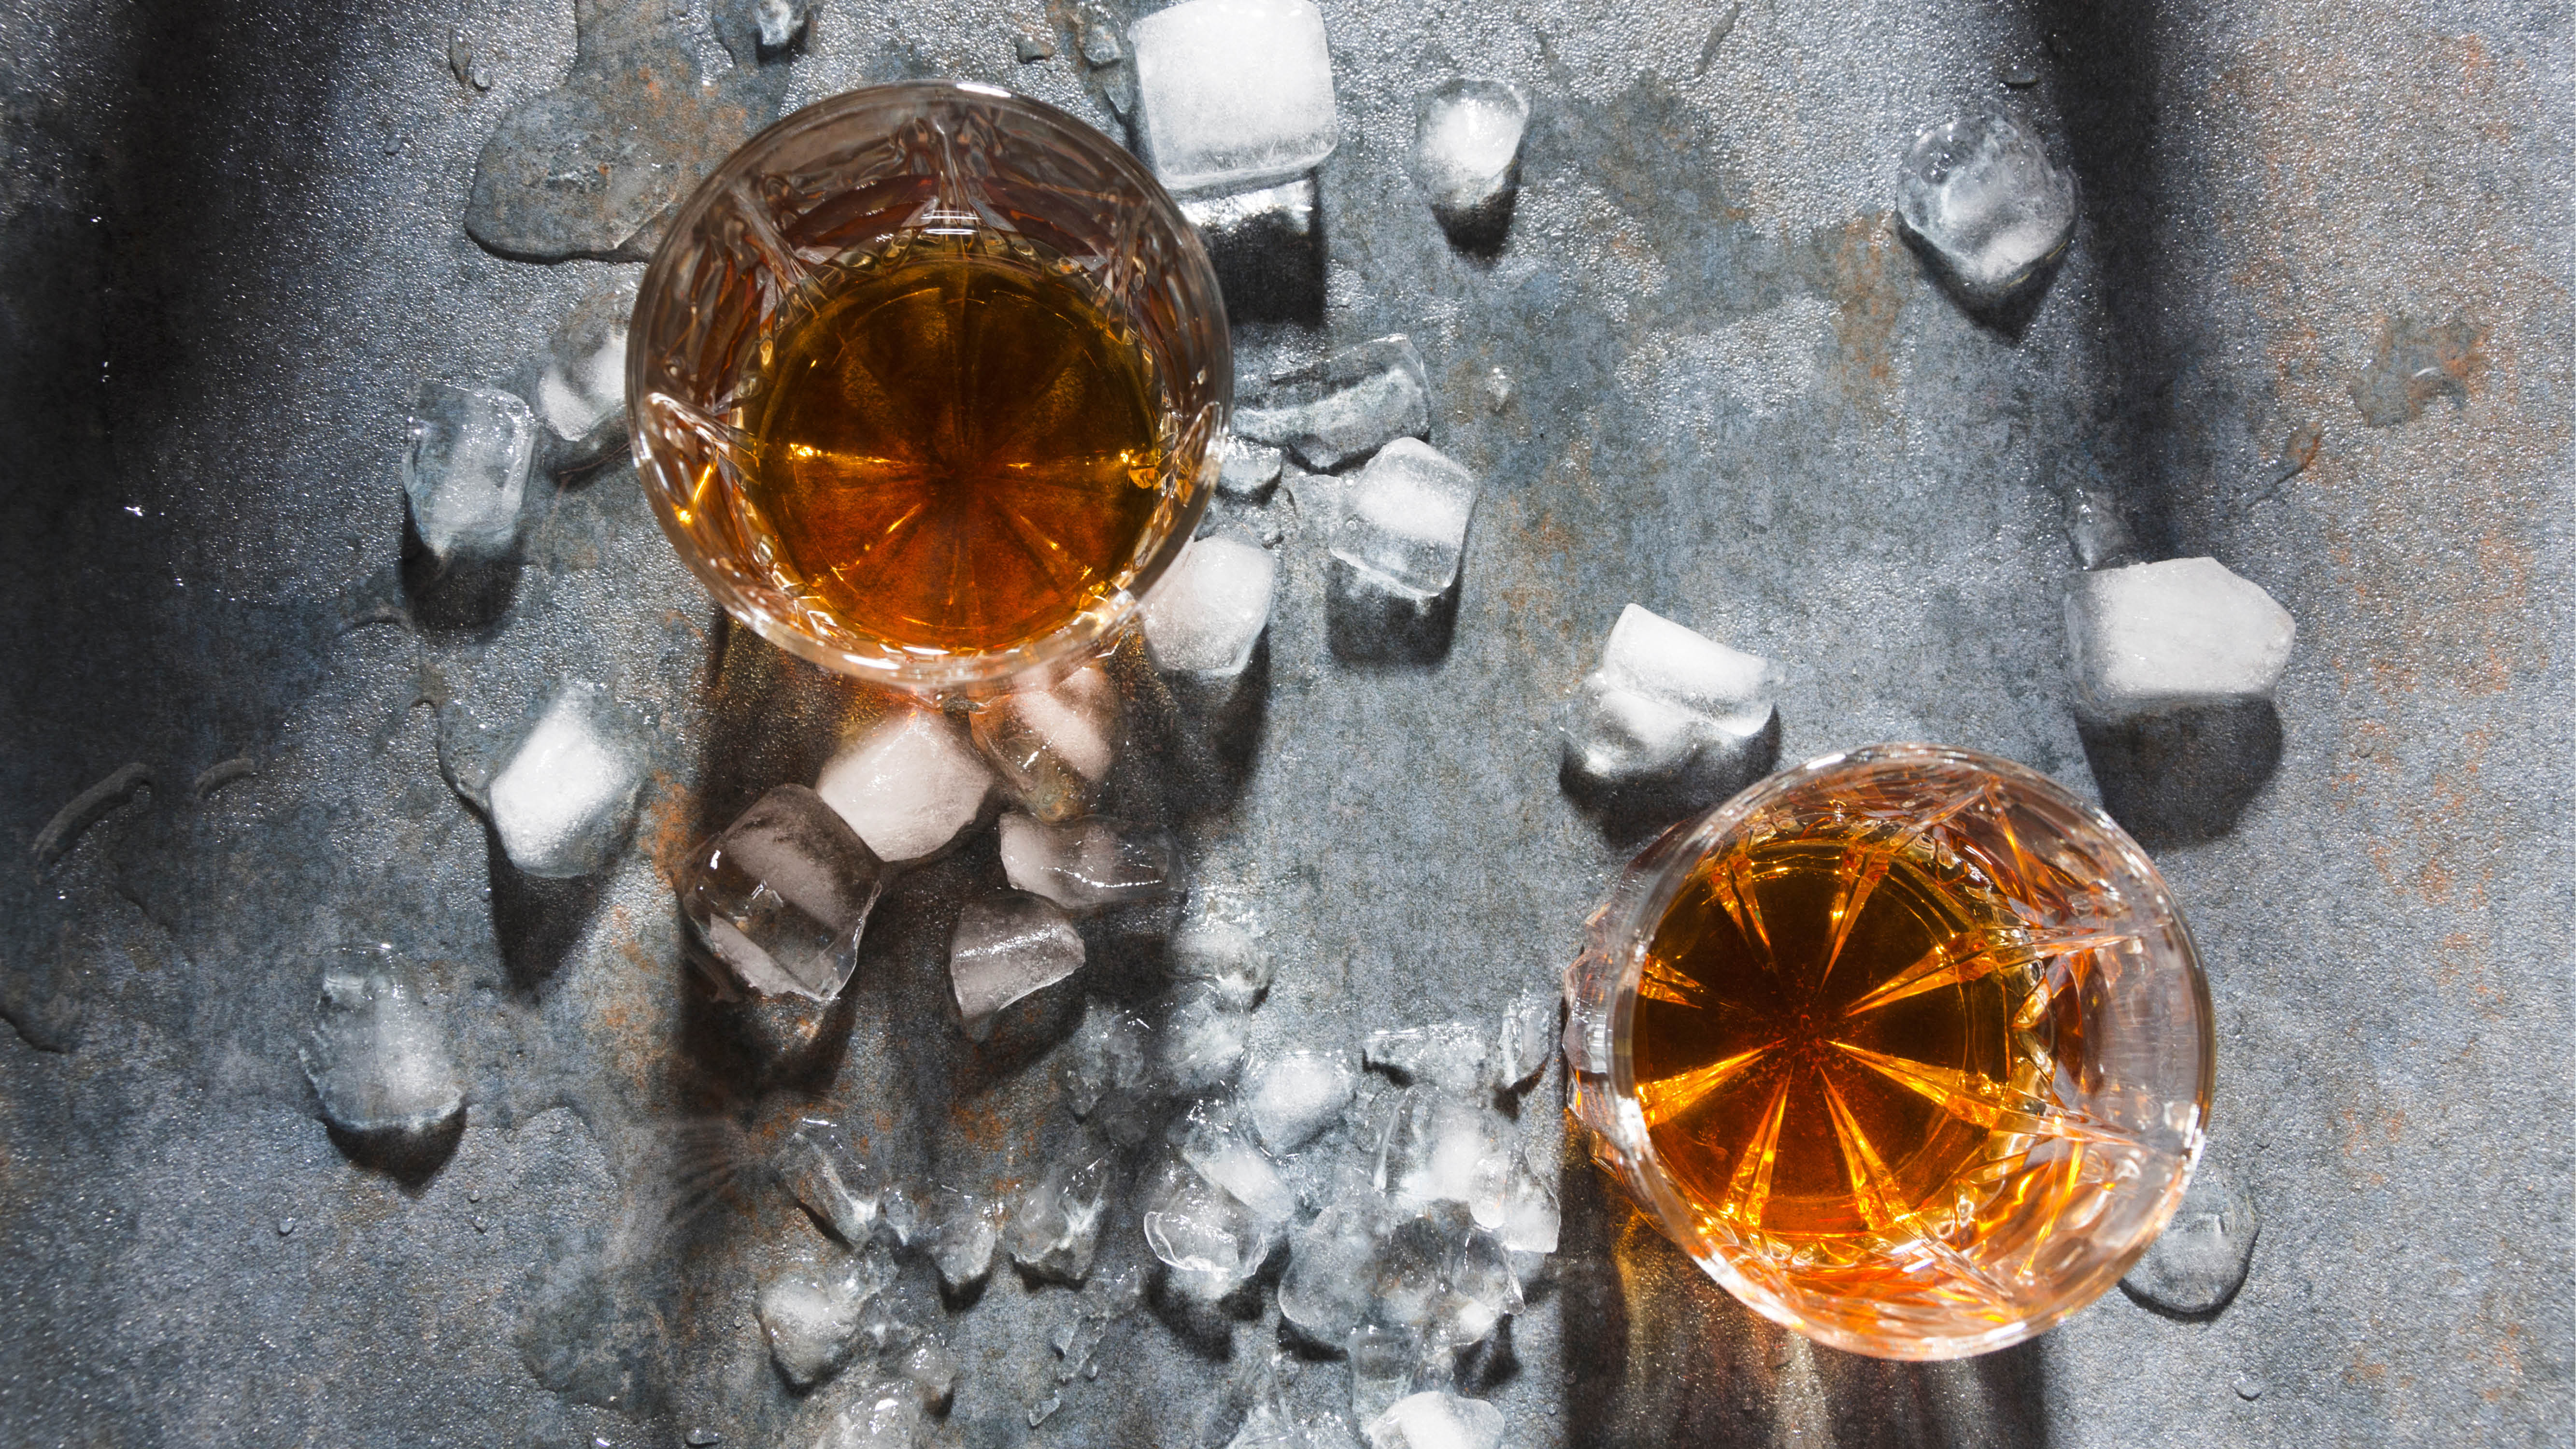 whisky-whisky-flat-lay-ice-concrete-background.jpg